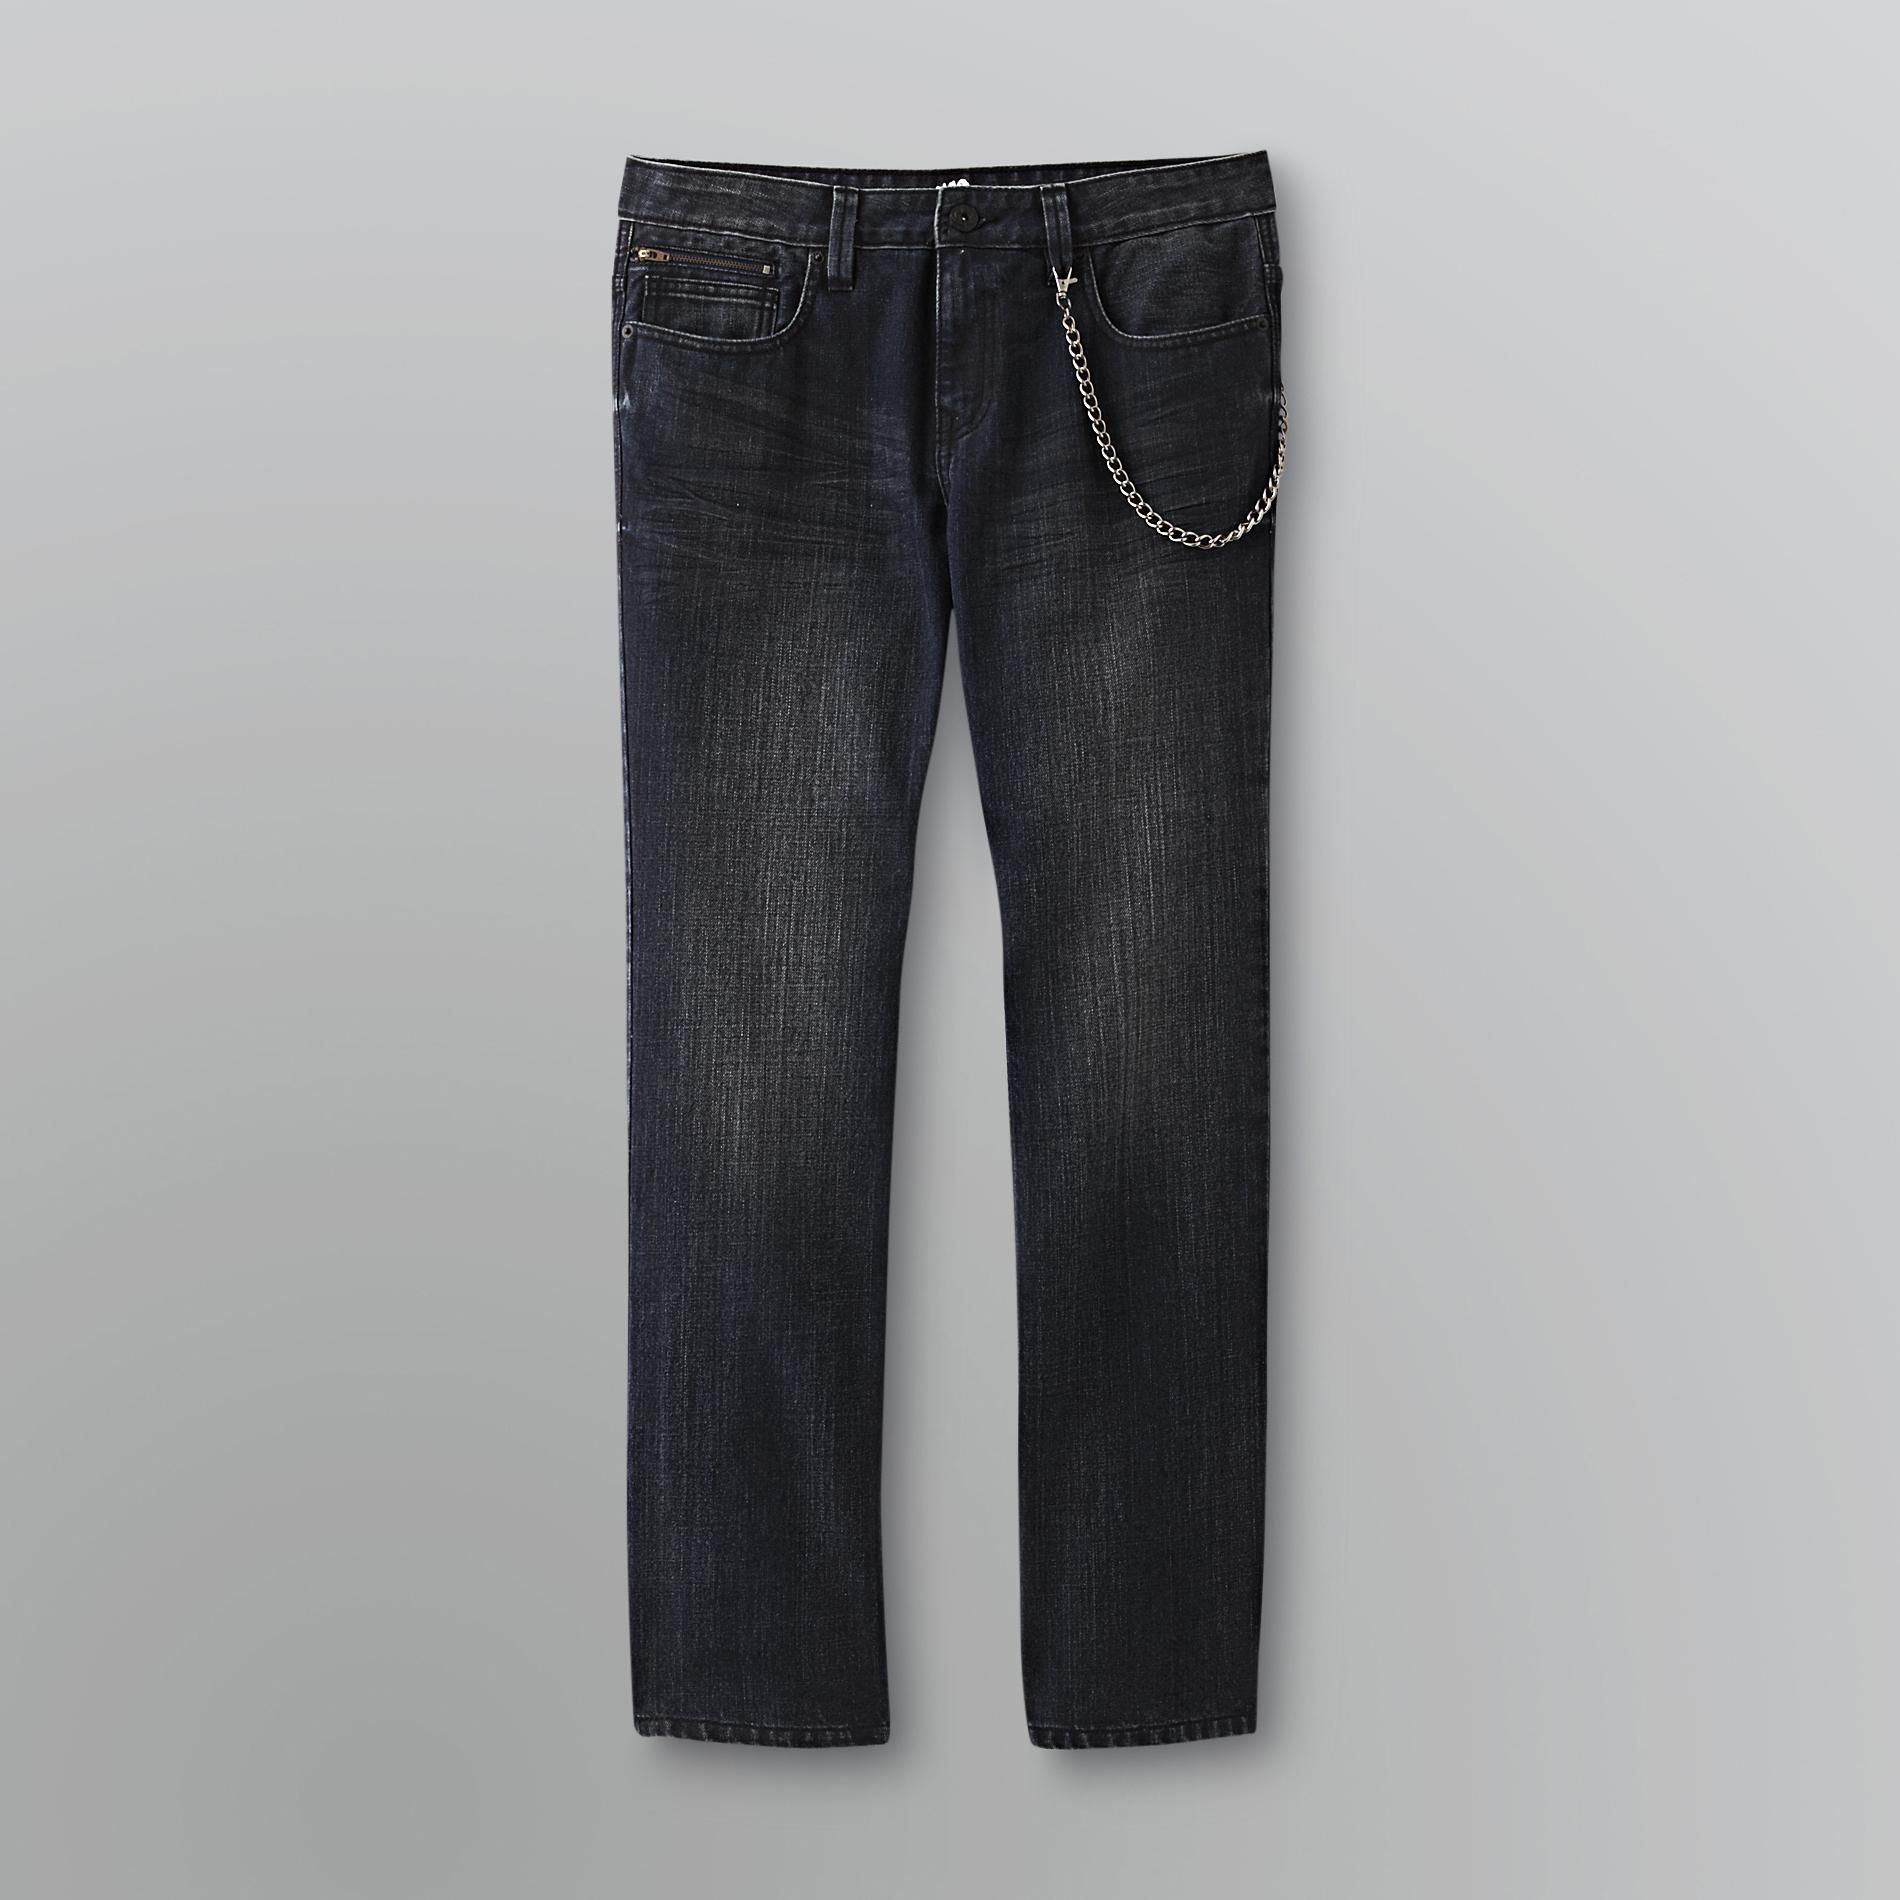 NSS Men's Edgy Slim-Straight Jeans